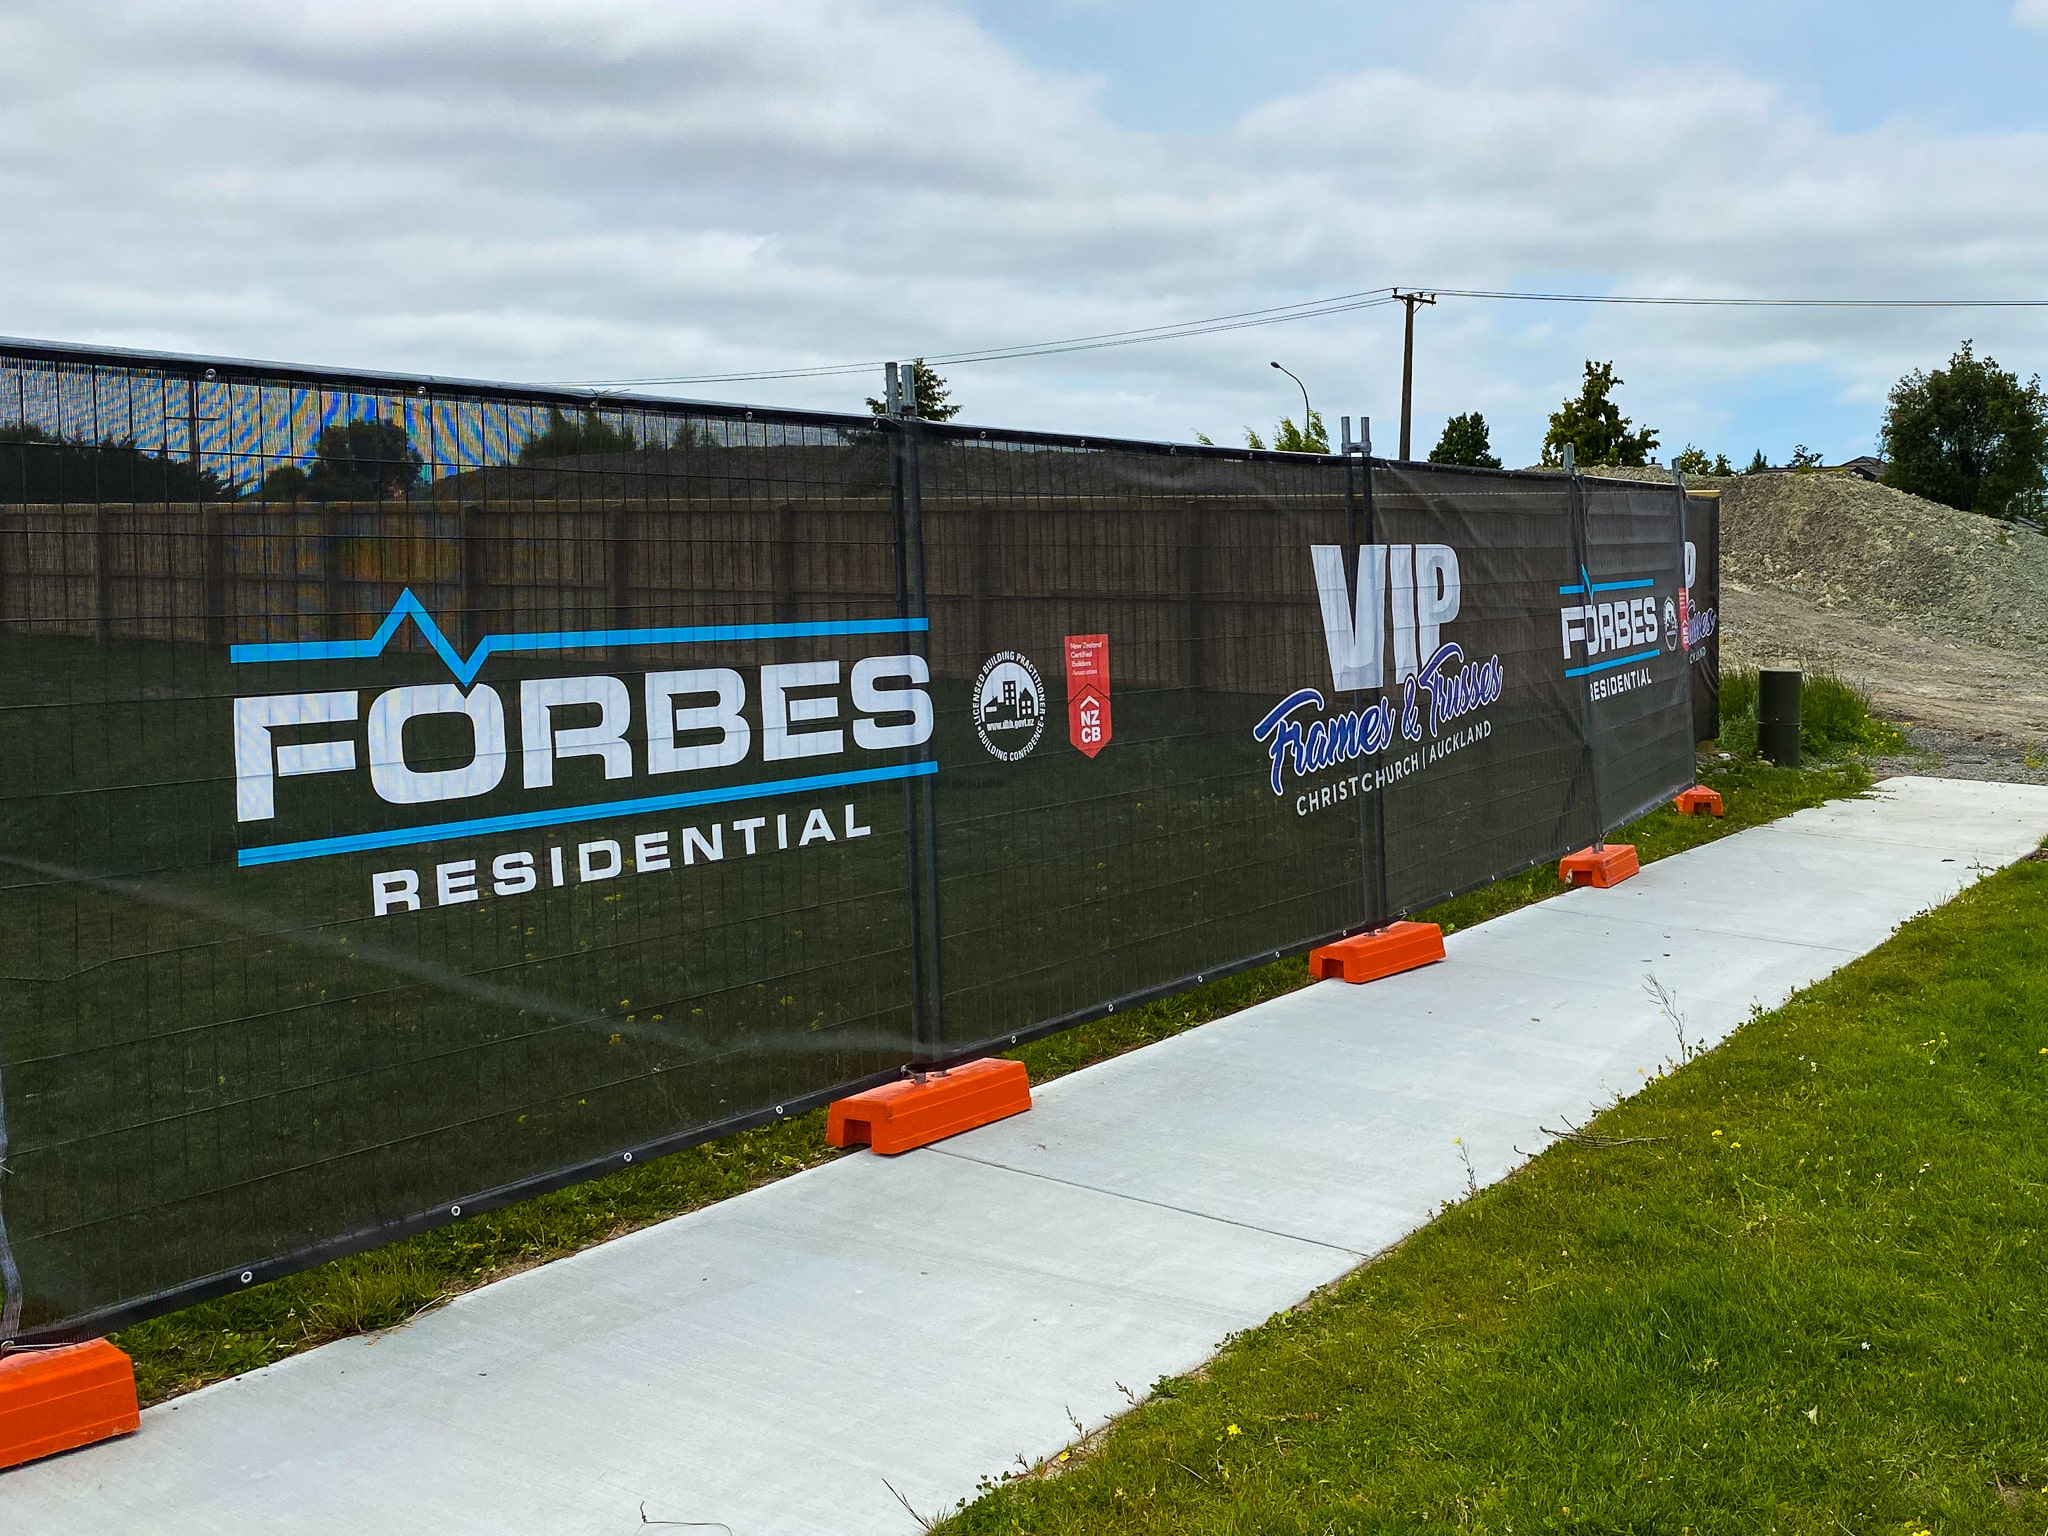 Forbes Residential New Zealand new home building site